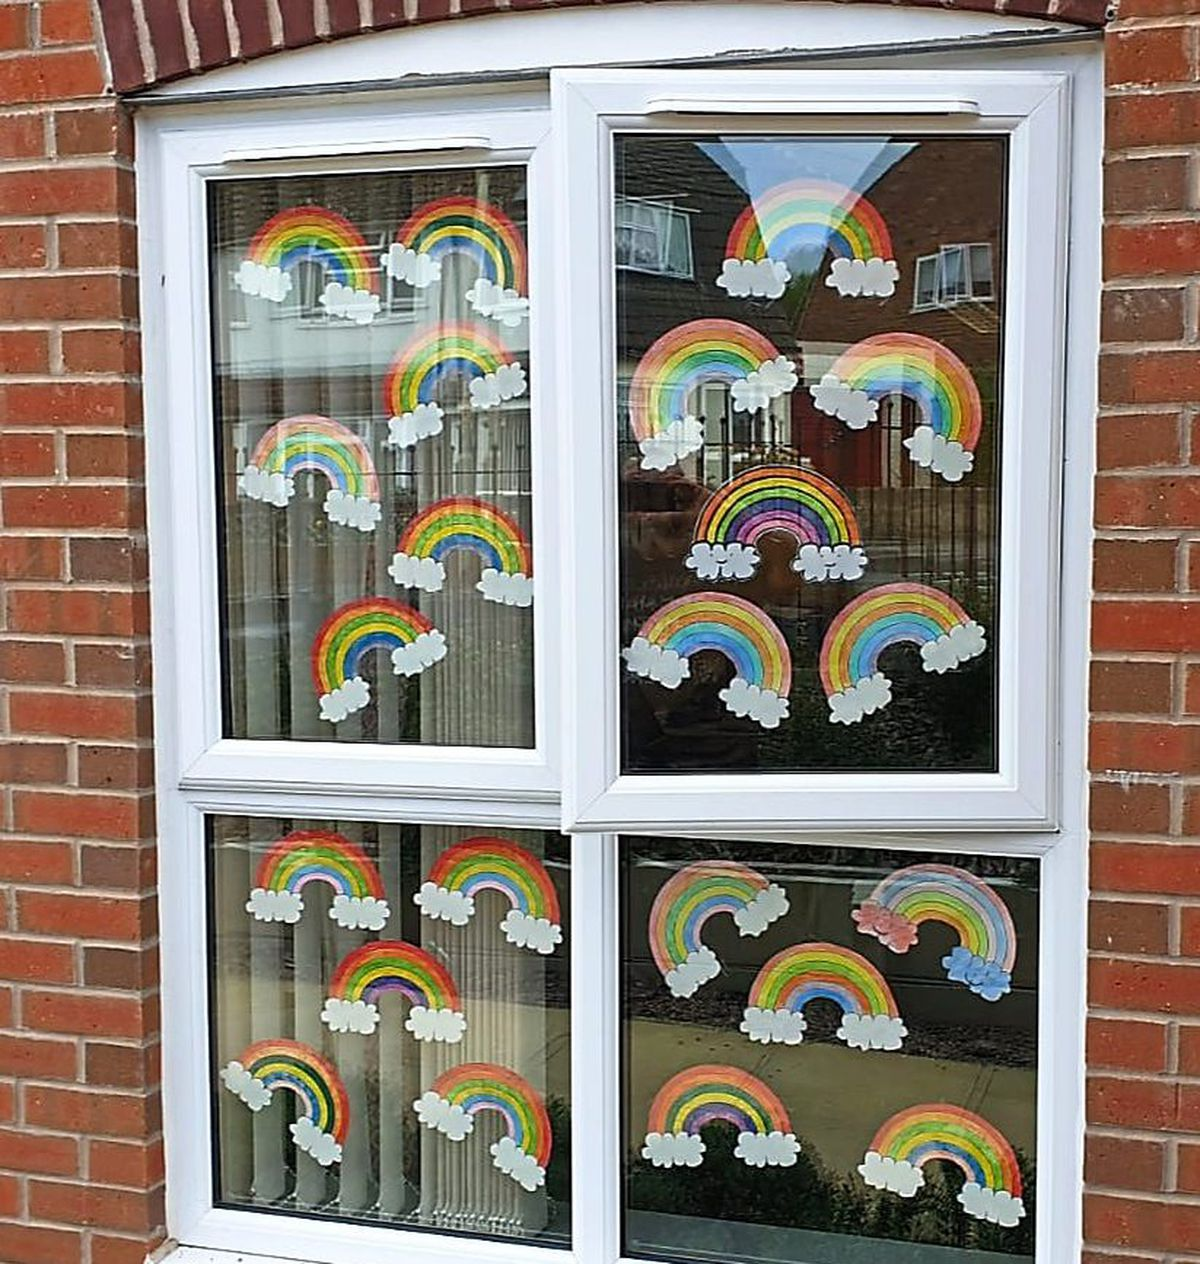 Rainbows painted on the windows at Dimensions